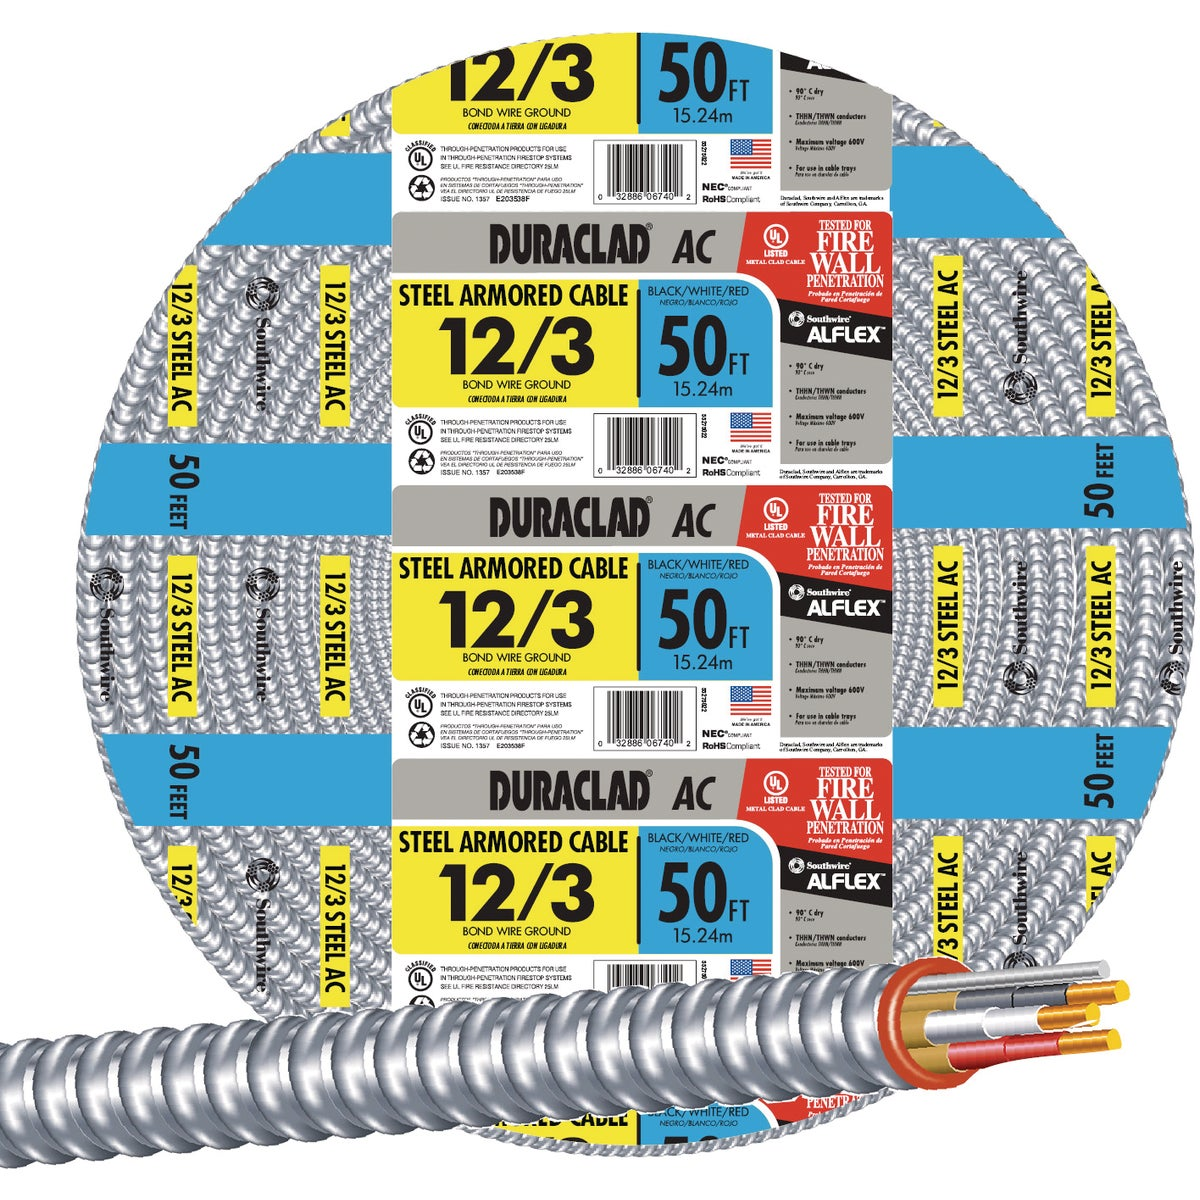 50' 12/3 STL ARMOR CABLE - 55275022 by Southwire Company